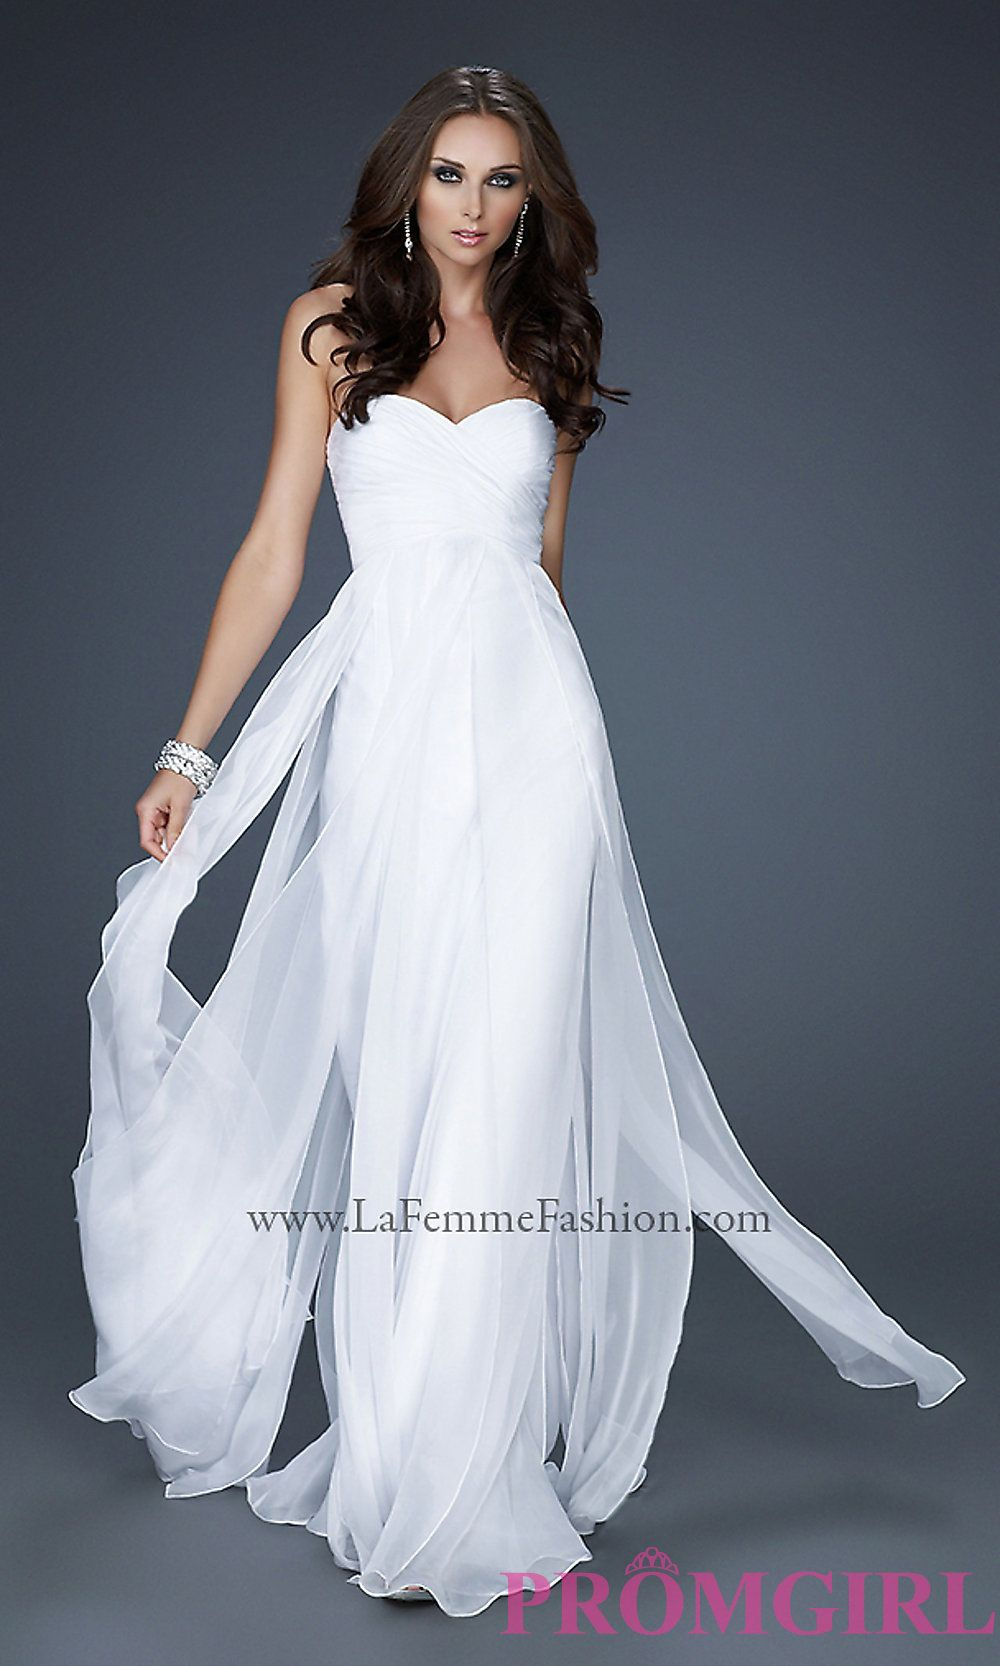 Long prom dress style lf front image brittany commencement